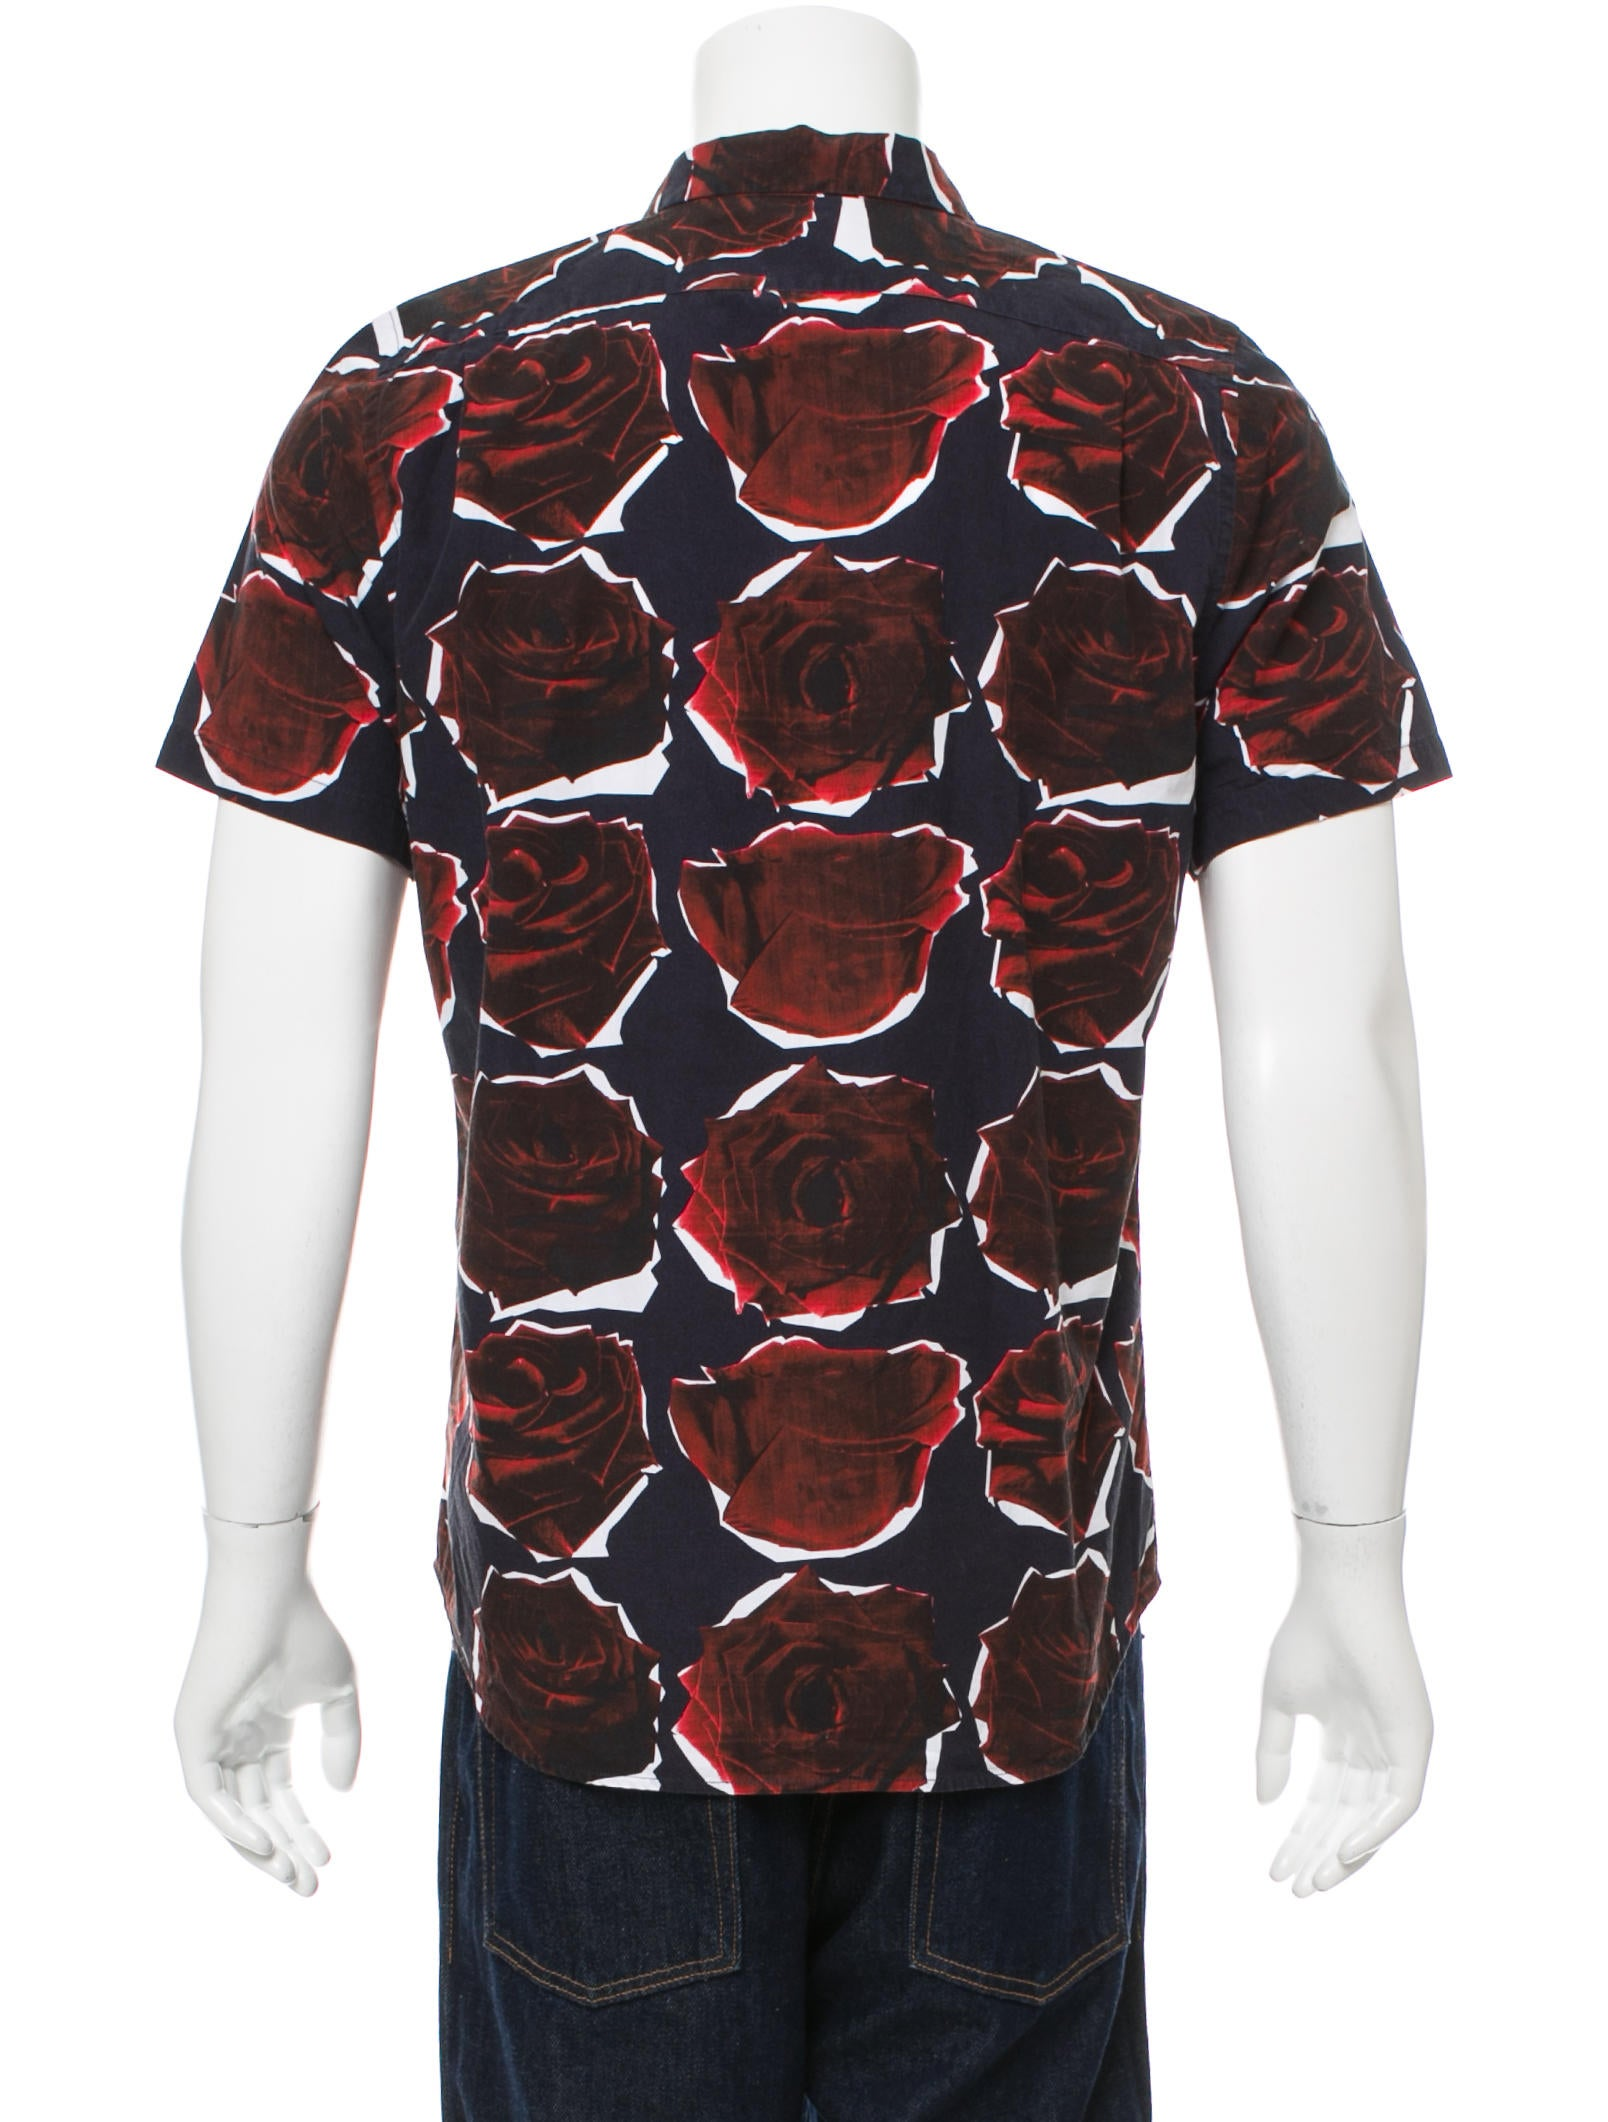 Ps by paul smith floral print button up shirt clothing for Floral print button up shirt